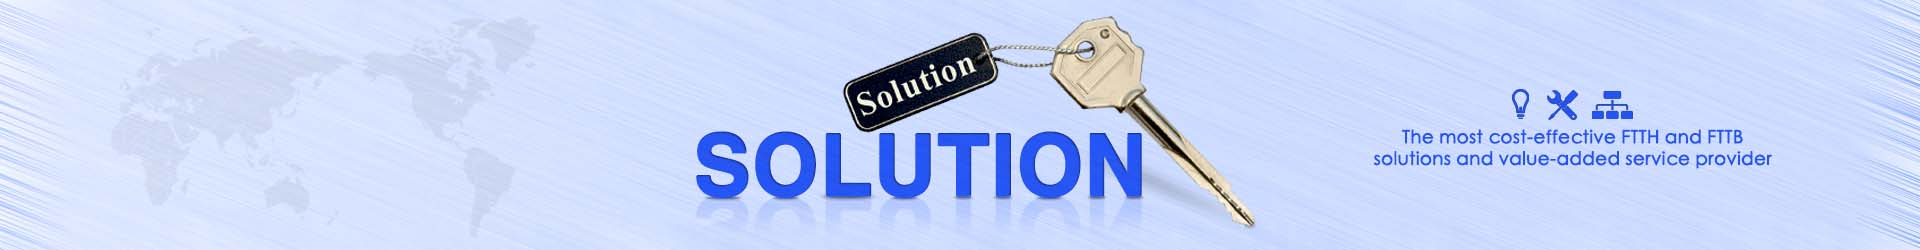 GEPON Technology Solution